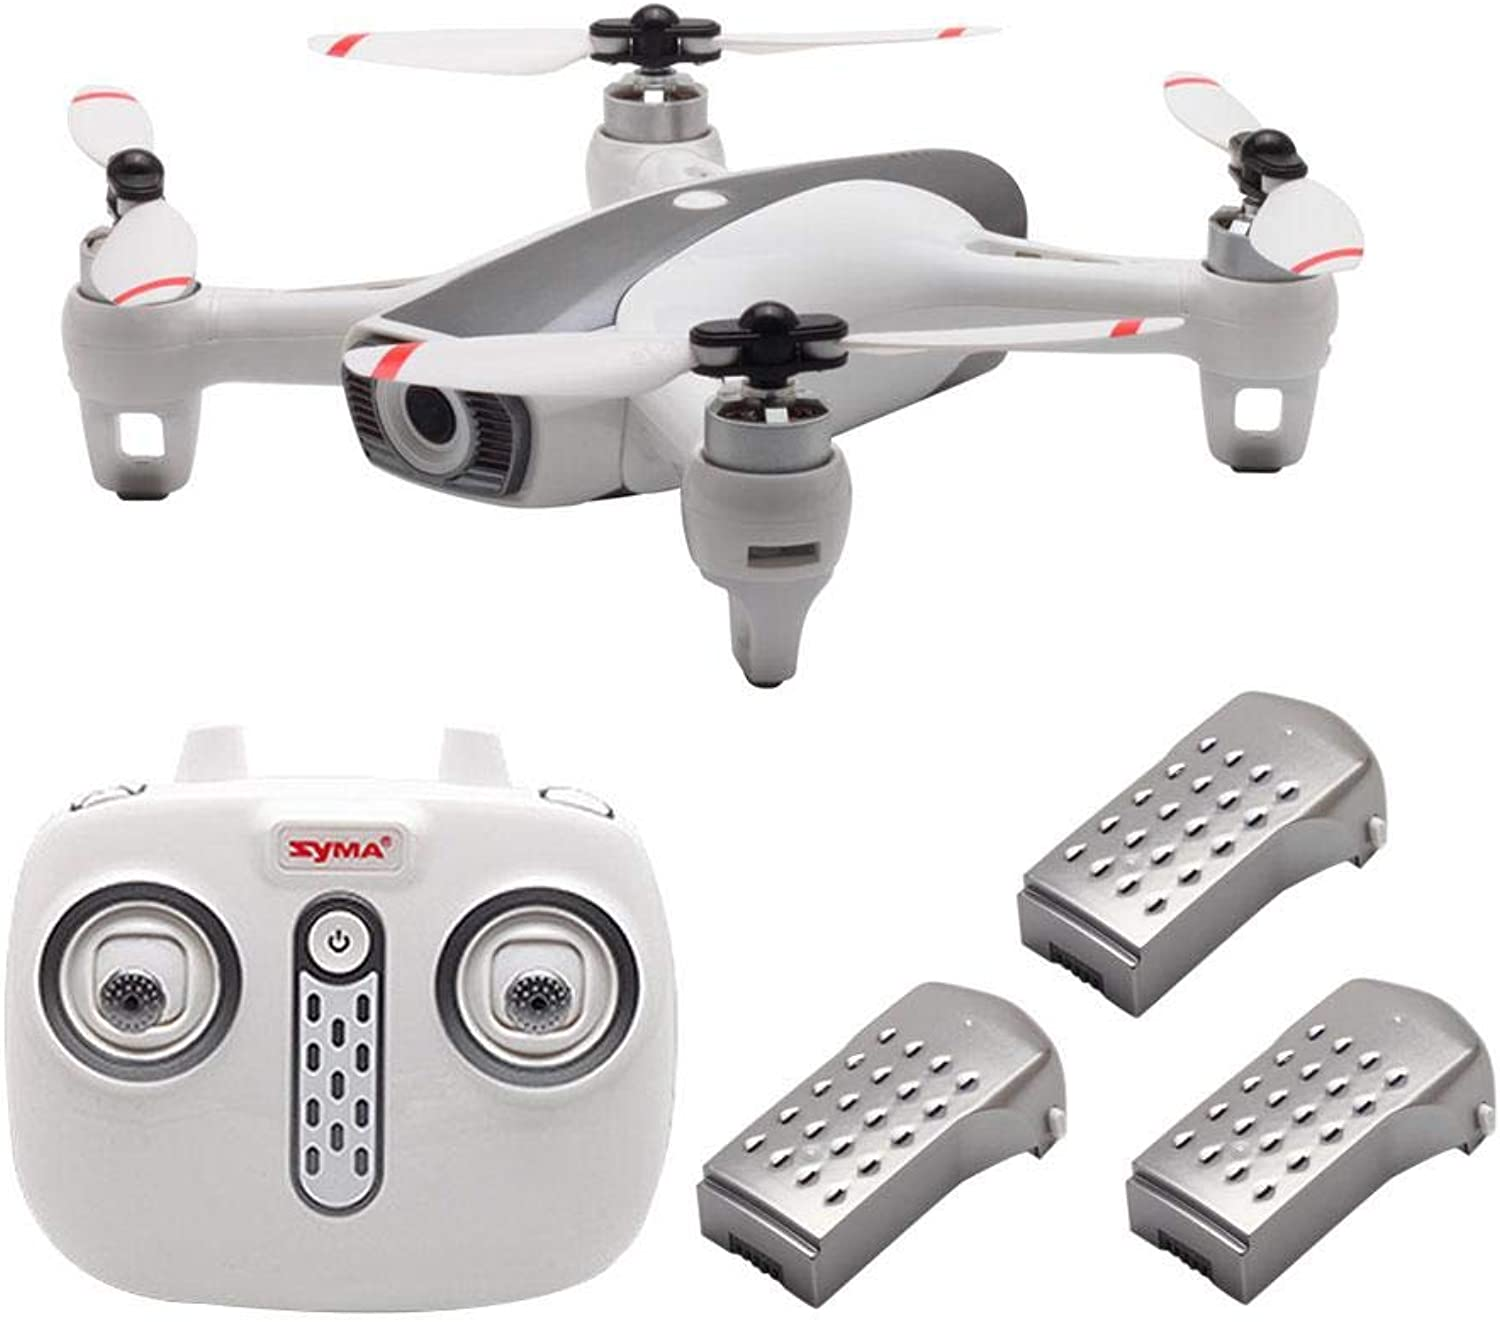 LIJUMN-TGS 2.4GHz Technology Anti-jamming 5G WIFI GPS 4K HD Drone Quadcopter With Stable Shooting With Gestures